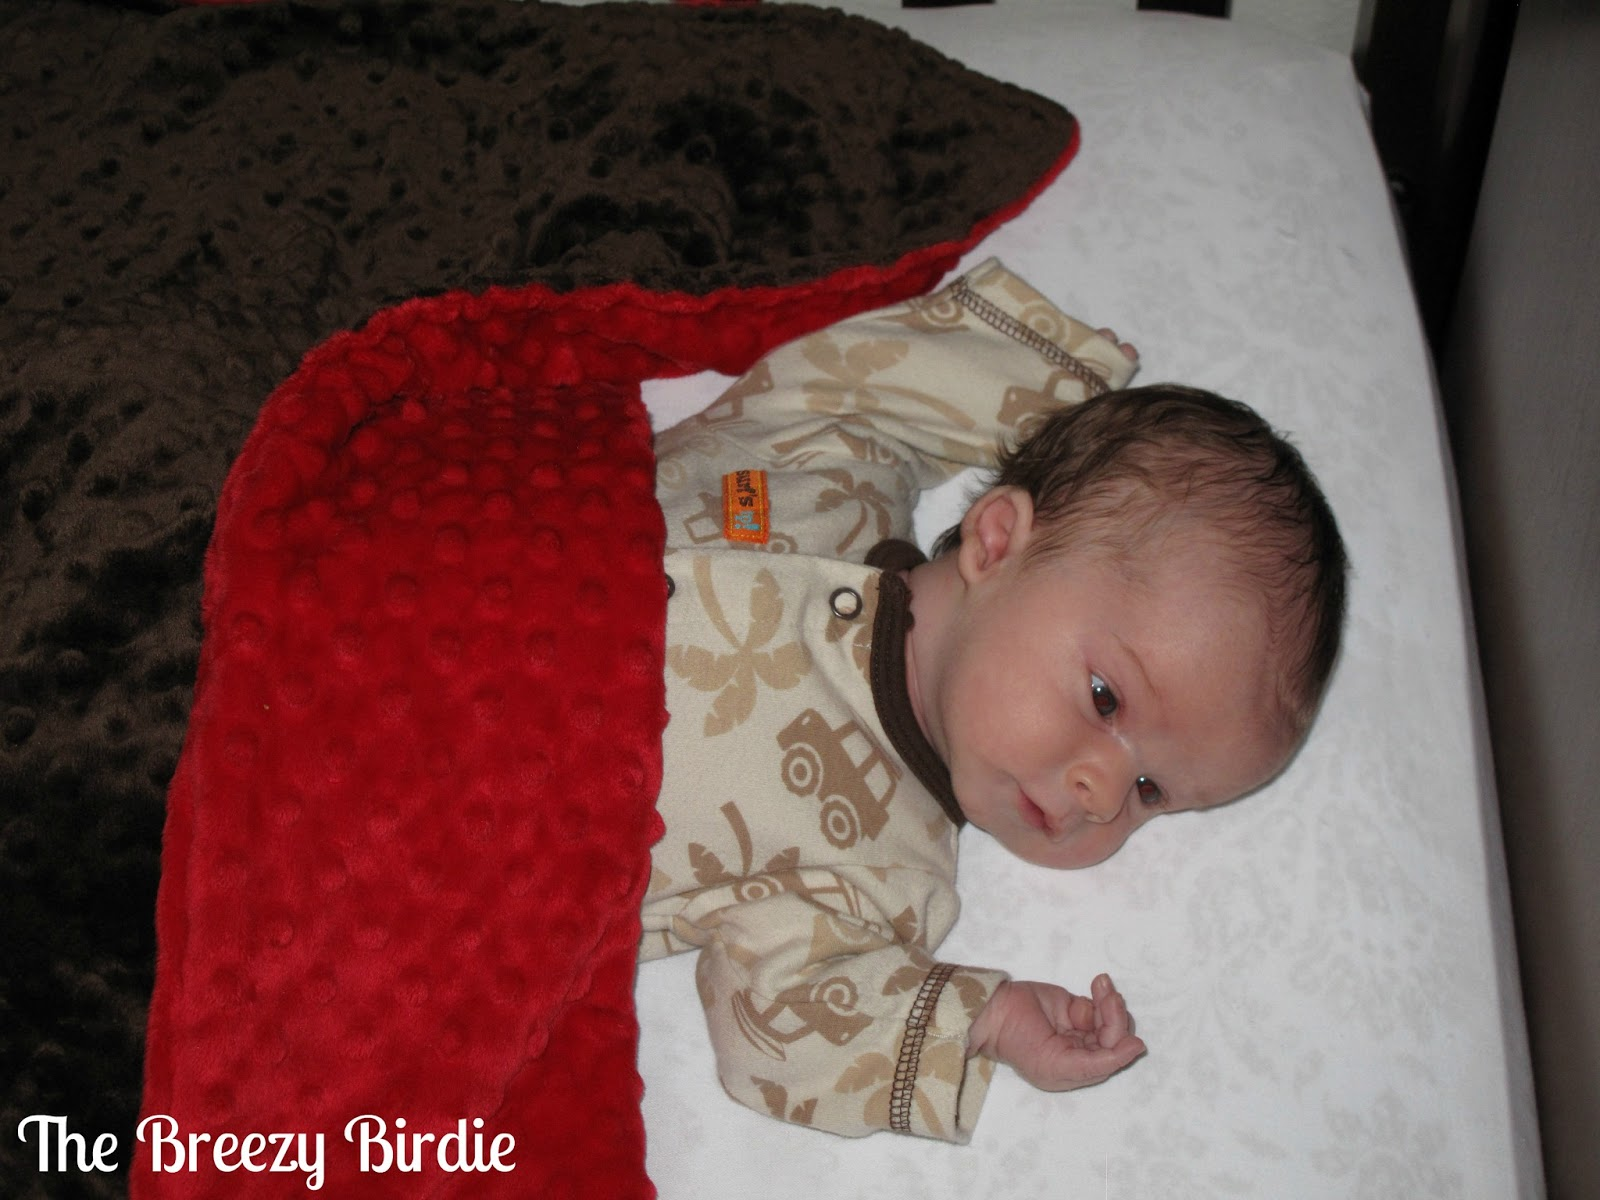 The Breezy Birdie: Review for Just Delivered: Minky Crib Blanket